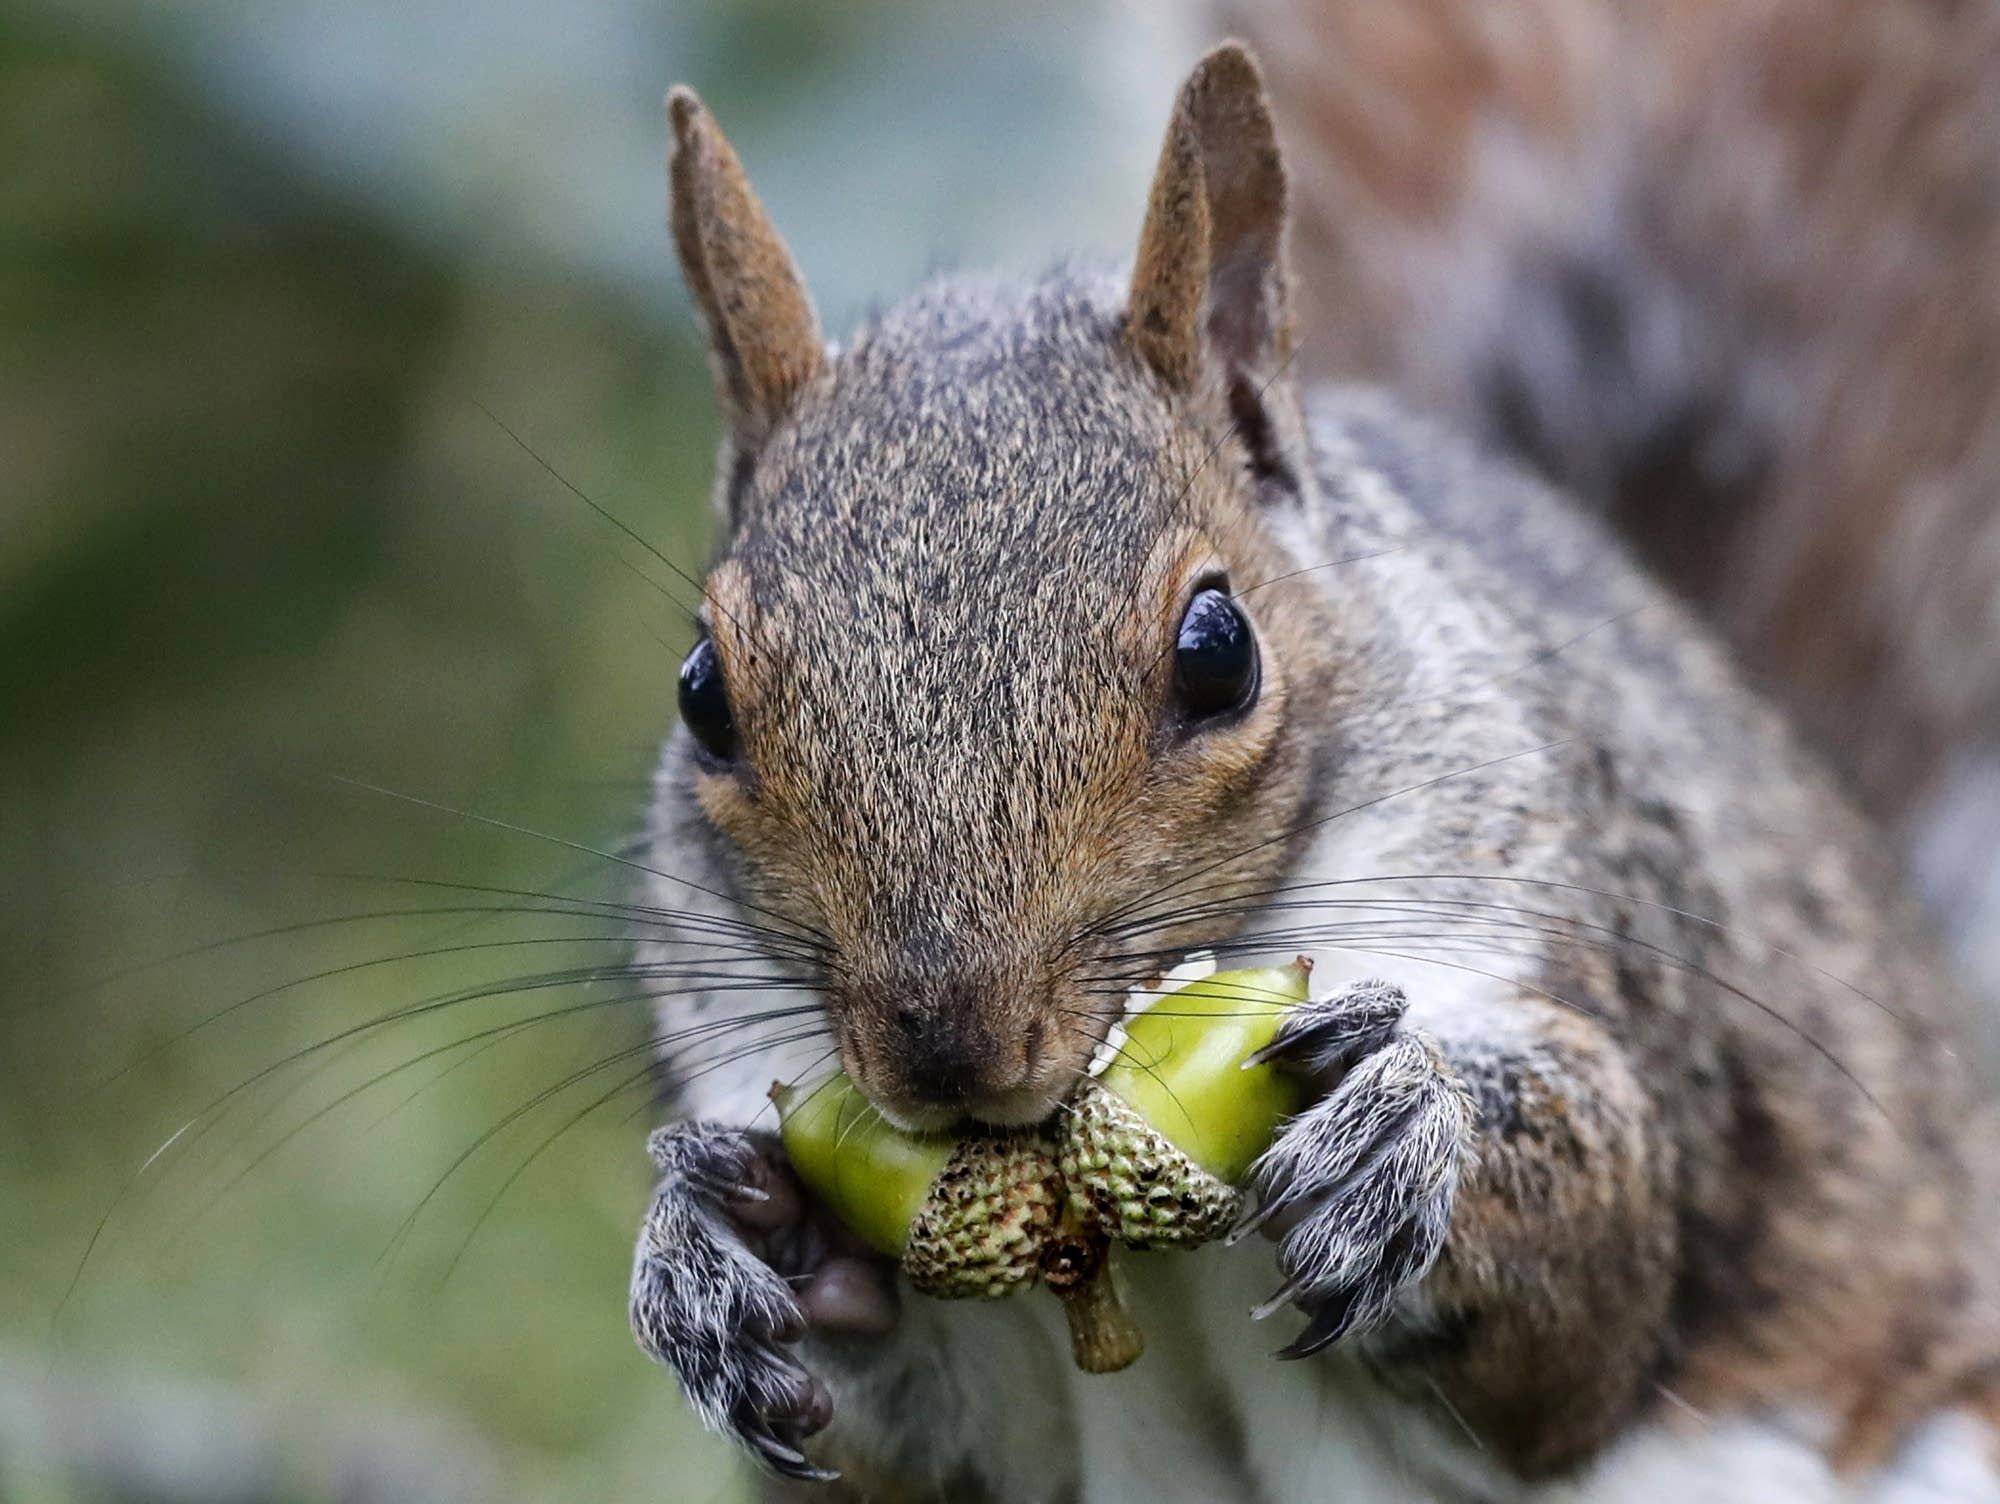 Squirrels Will Chew On Wires Electrical And Security Systems And